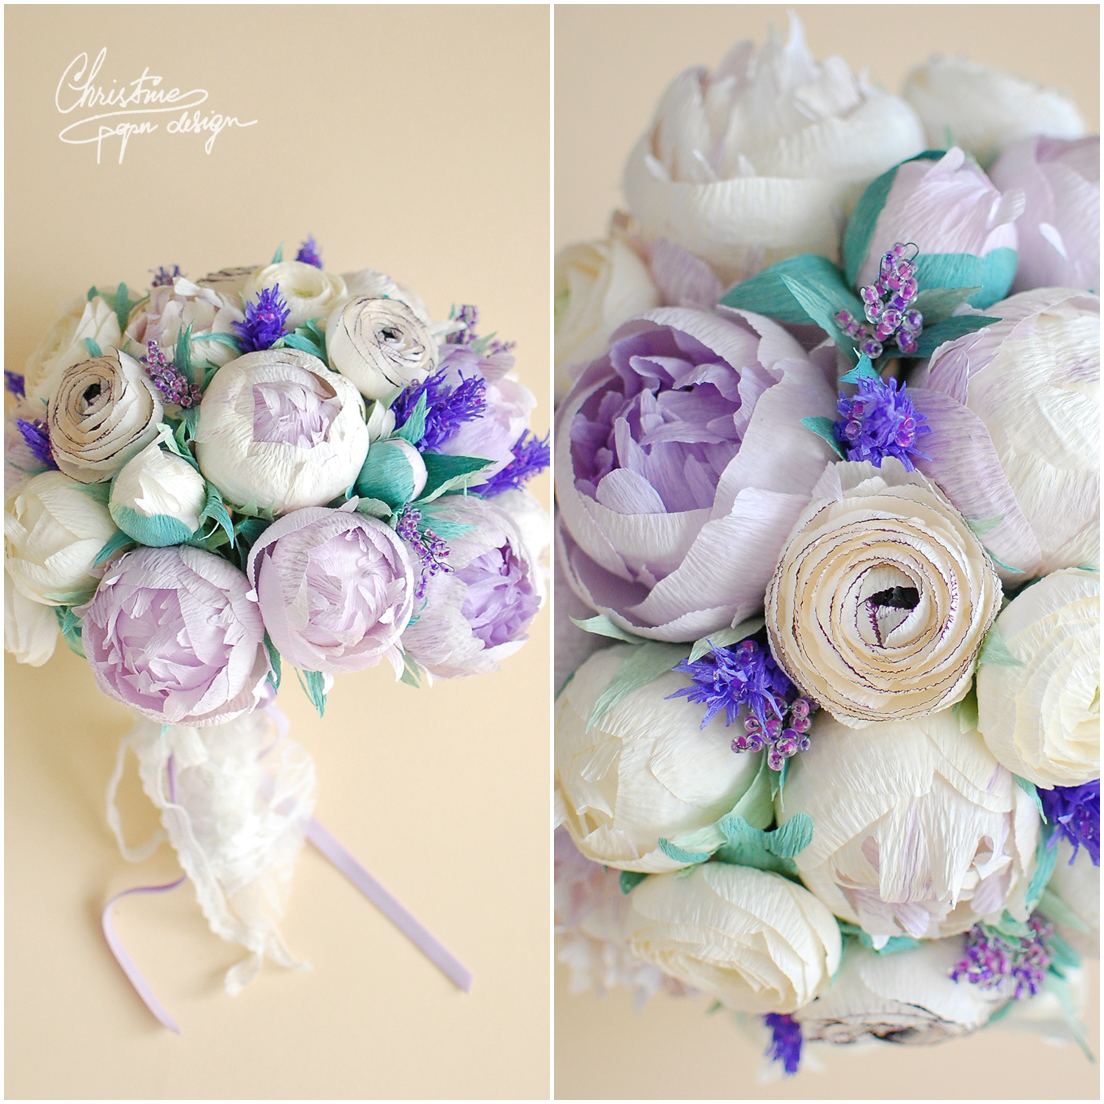 1Christine paper design - paper flowers bridal bouquet